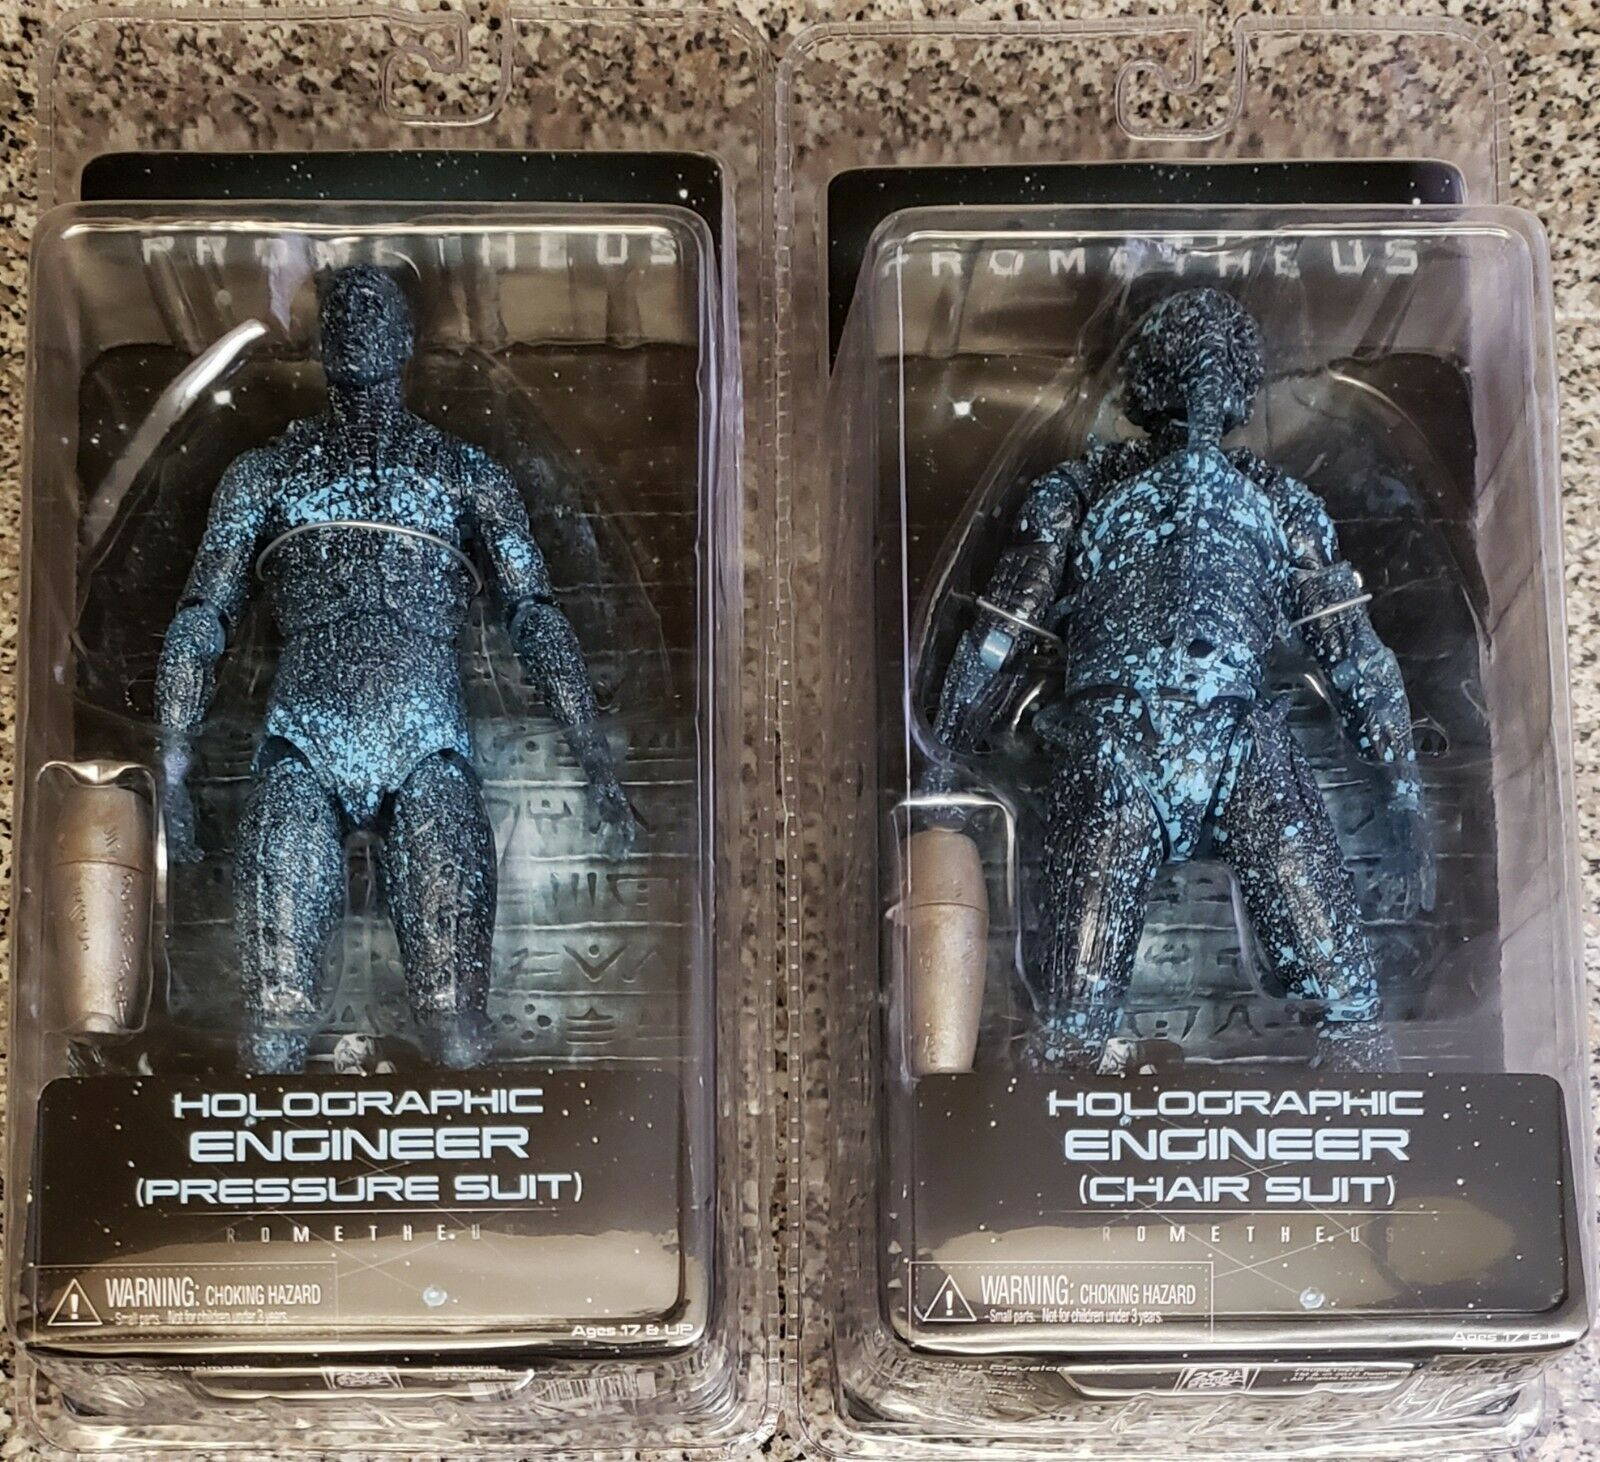 NECA PROMETHEUSHOLOGRAPHIC ENGINEER PRESSURE SUIT e CHAIR SUIT cifraS,nuovo